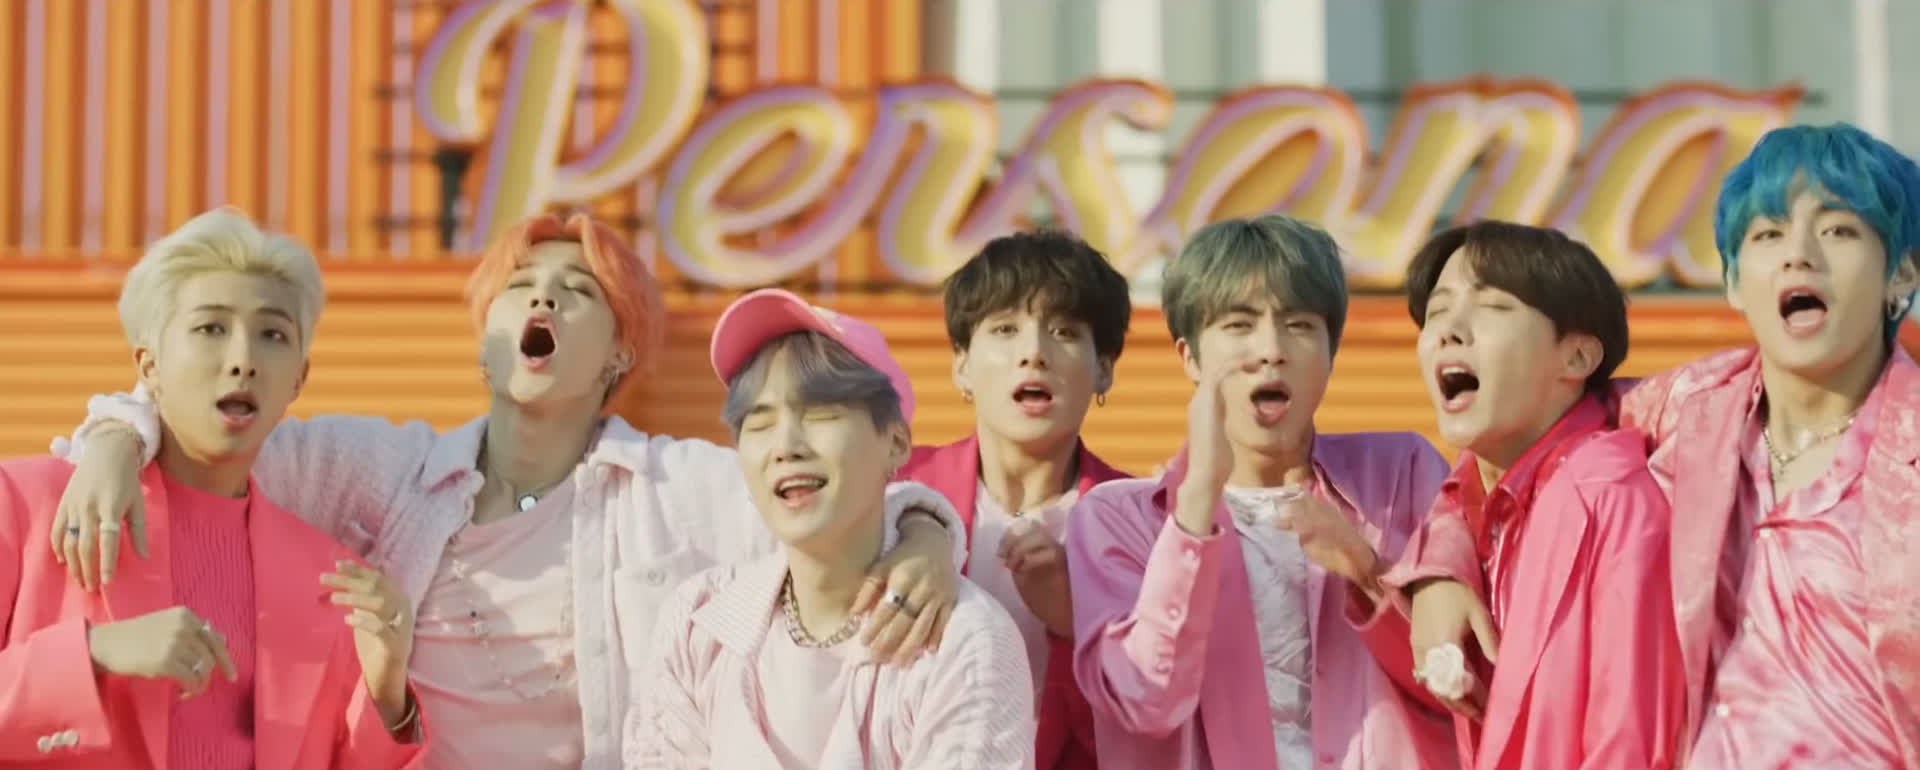 boy in luv, boy with love, bts, bwl, halsey, jhope, jimin, jin, jungkook, kpop, music, persona, rm, soul, suga, tae, v, BOY WITH LUUUUUUUUUUUUUUUUUUUUUUUUUUUUUUUUUVVVVVVVVVVVVVVVVVVV GIFs